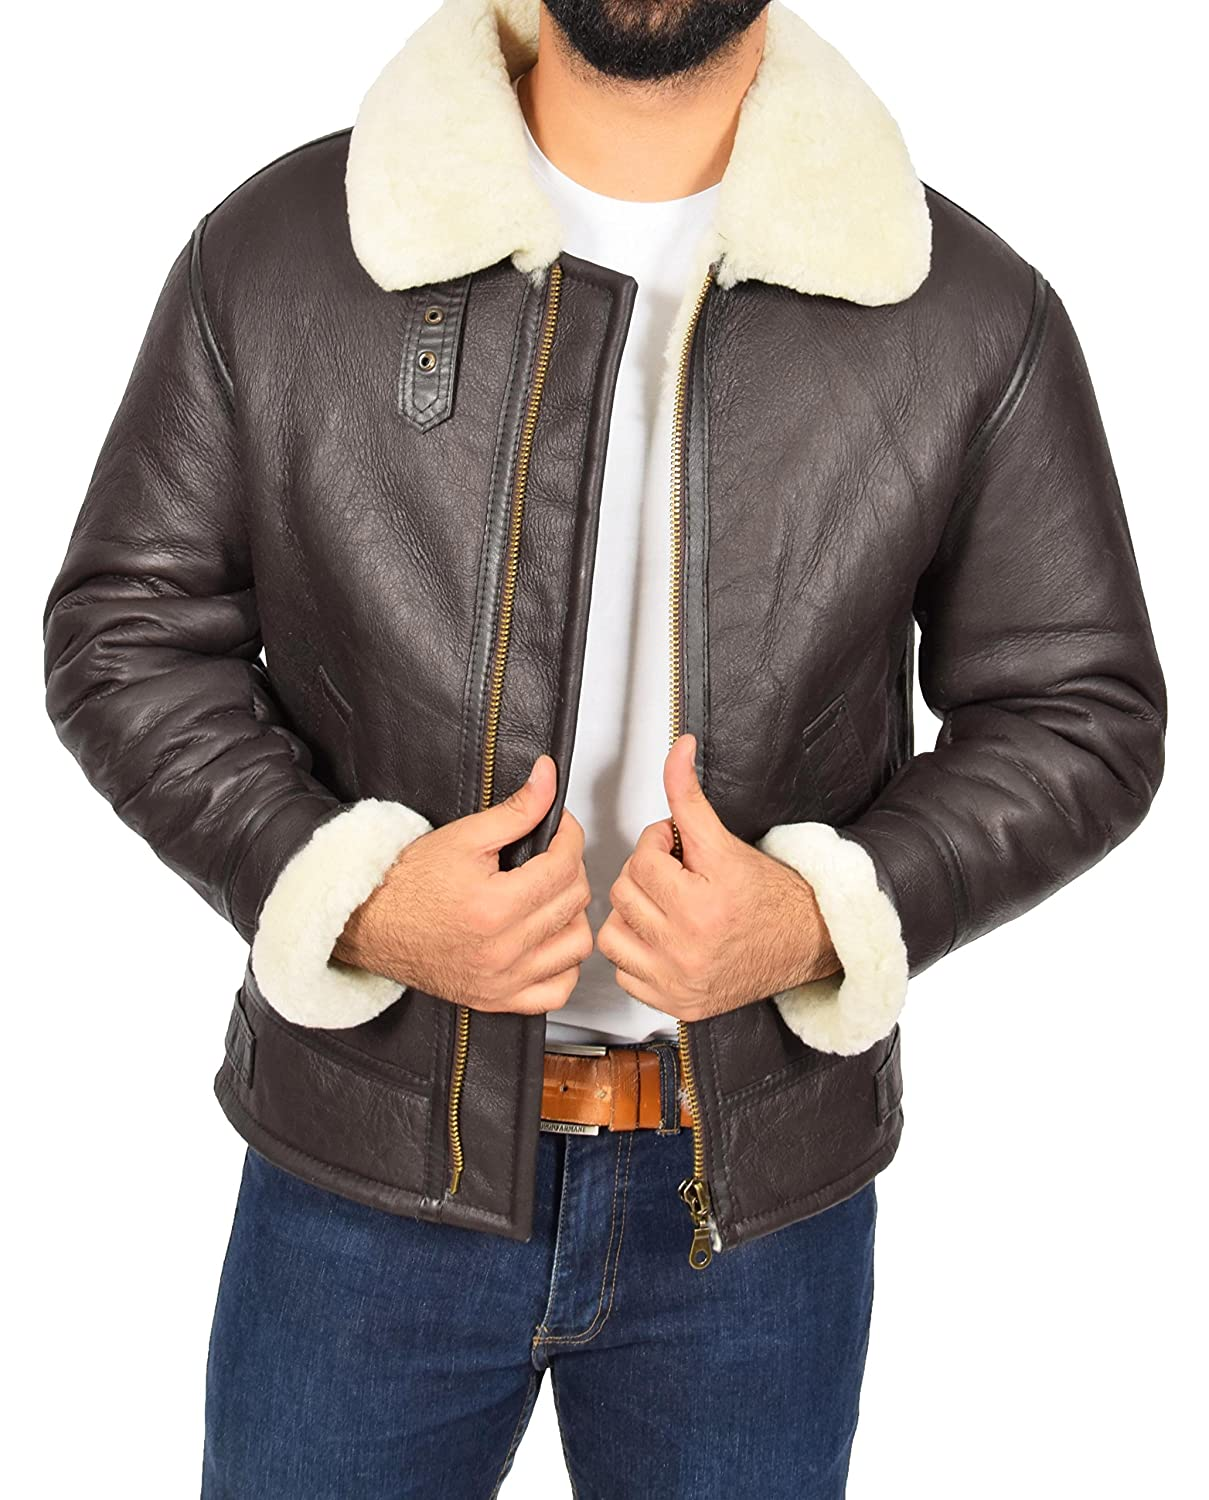 Mens Real Brown Sheepskin Flying Leather Jacket White Shearling Bomber Coat Lancer at Amazon Mens Clothing store: